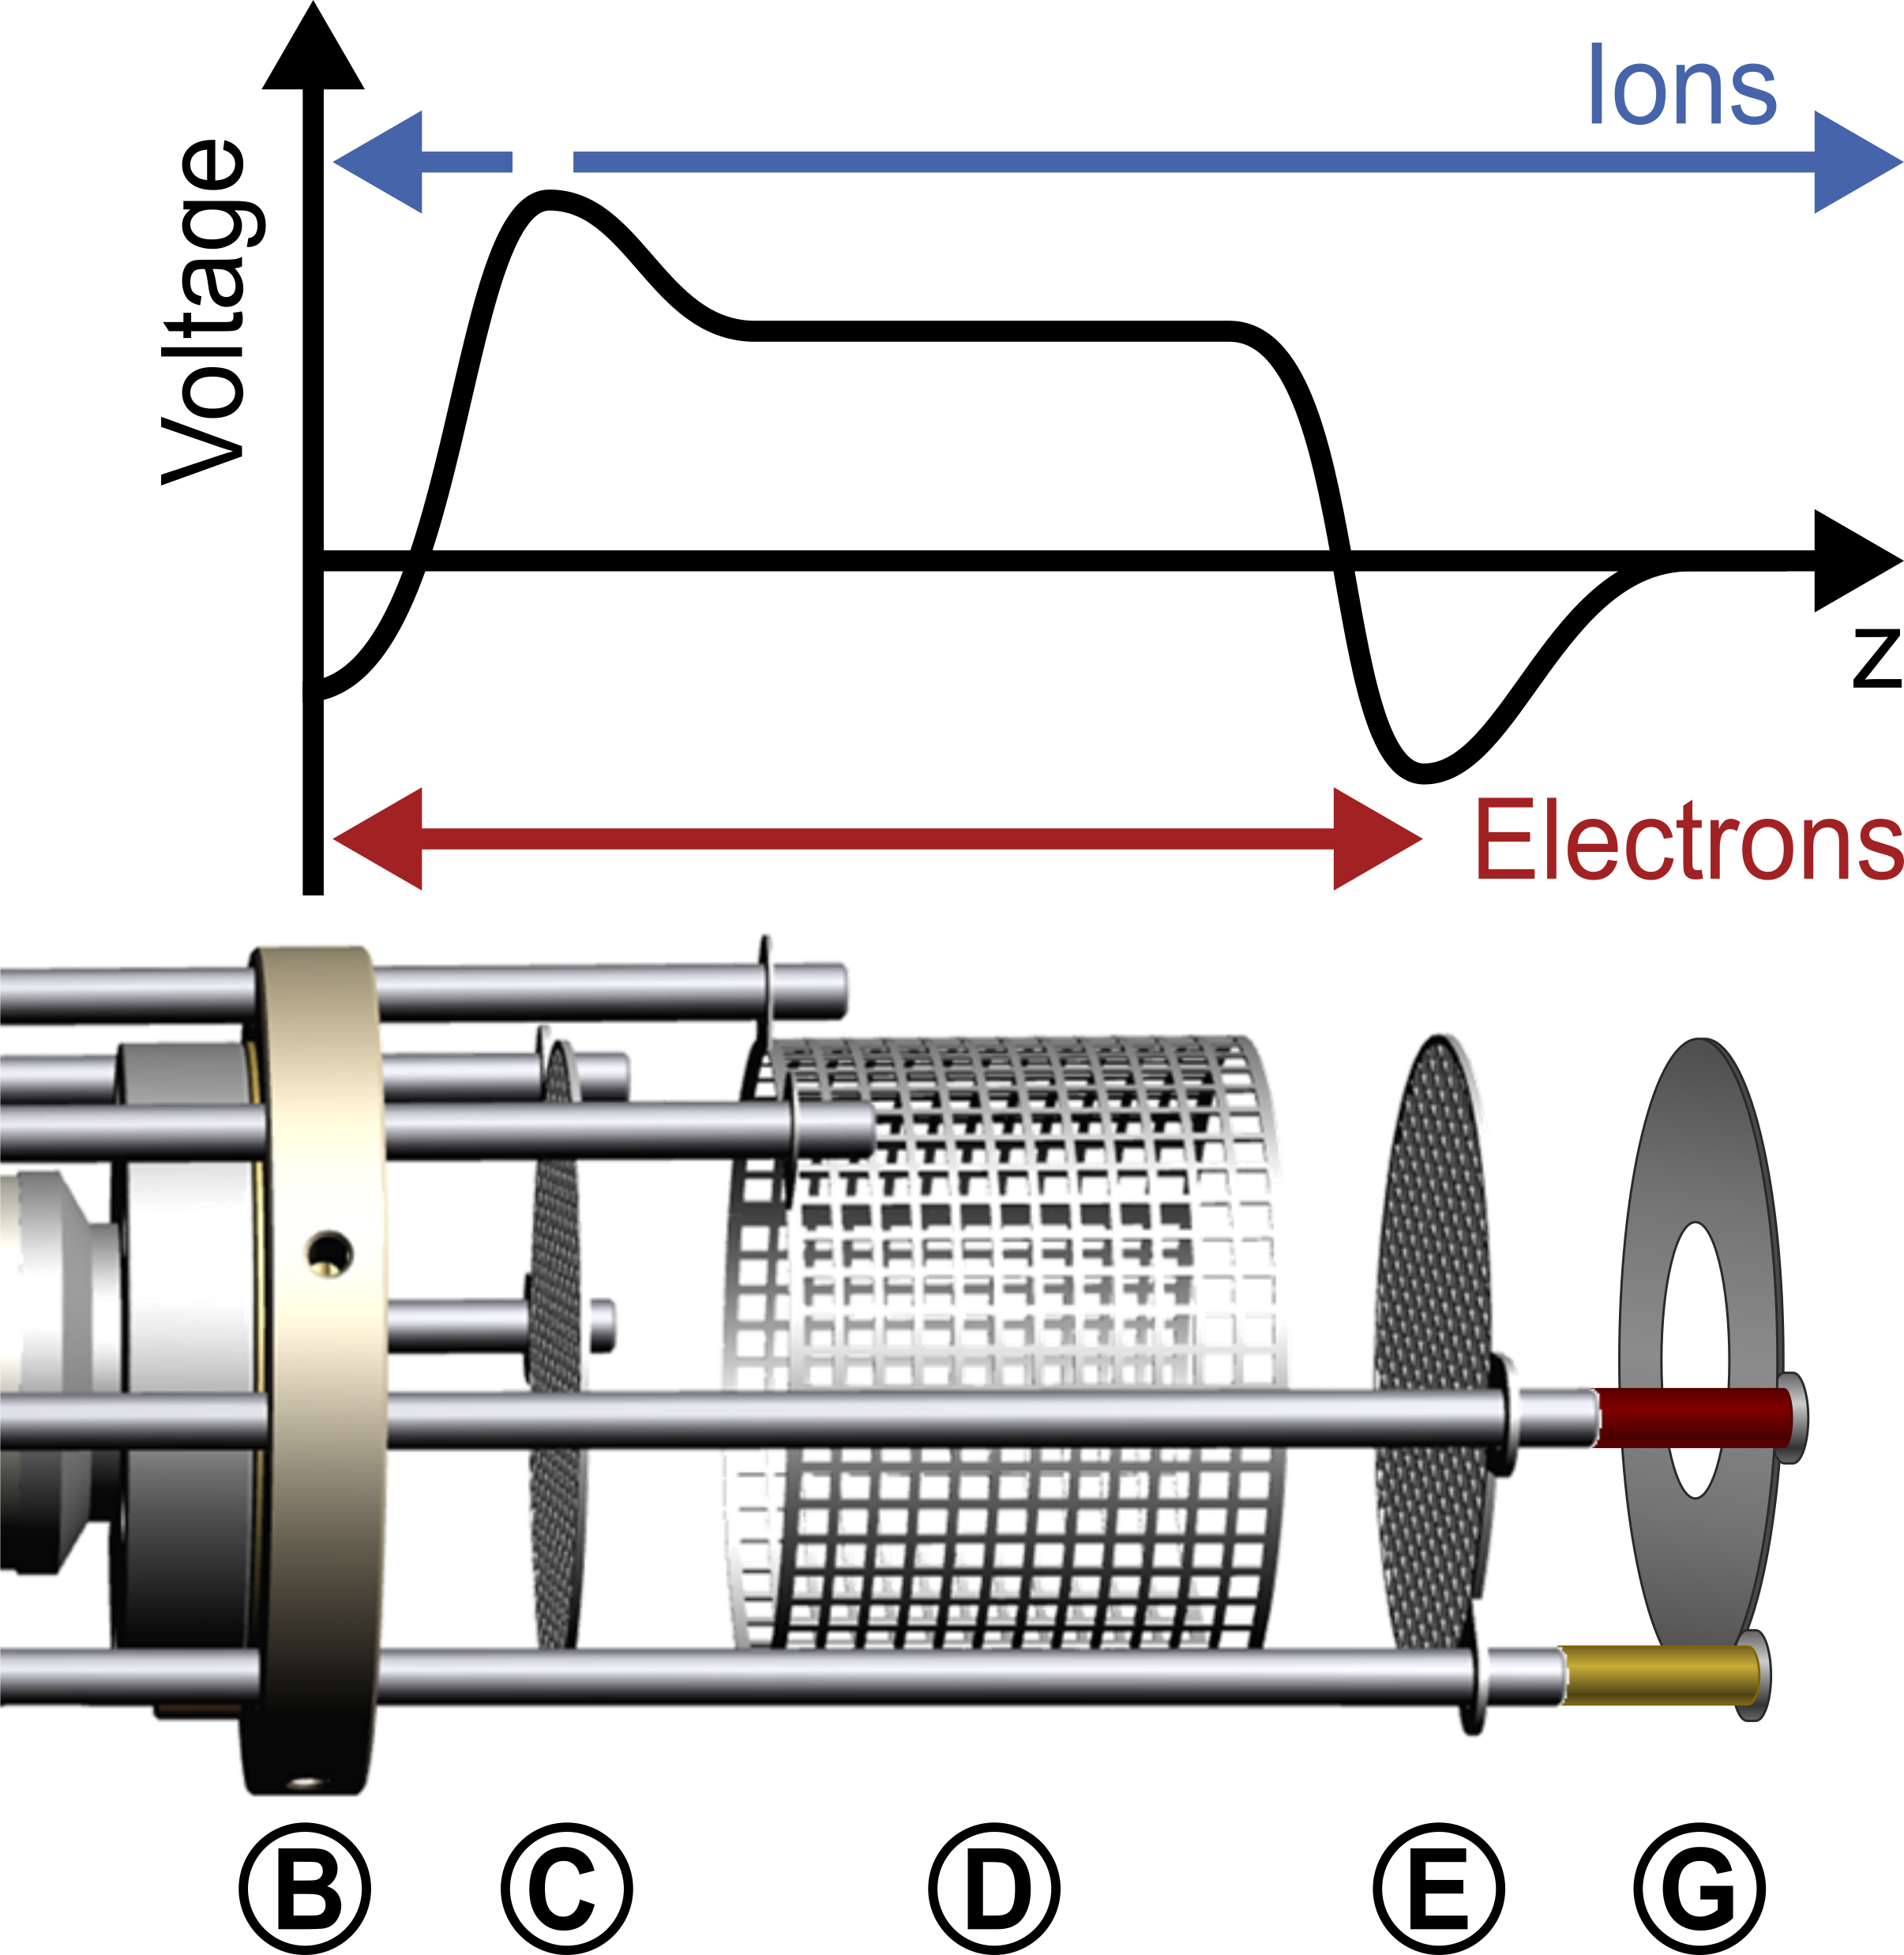 Transmission drawing labeled. First of electrons and